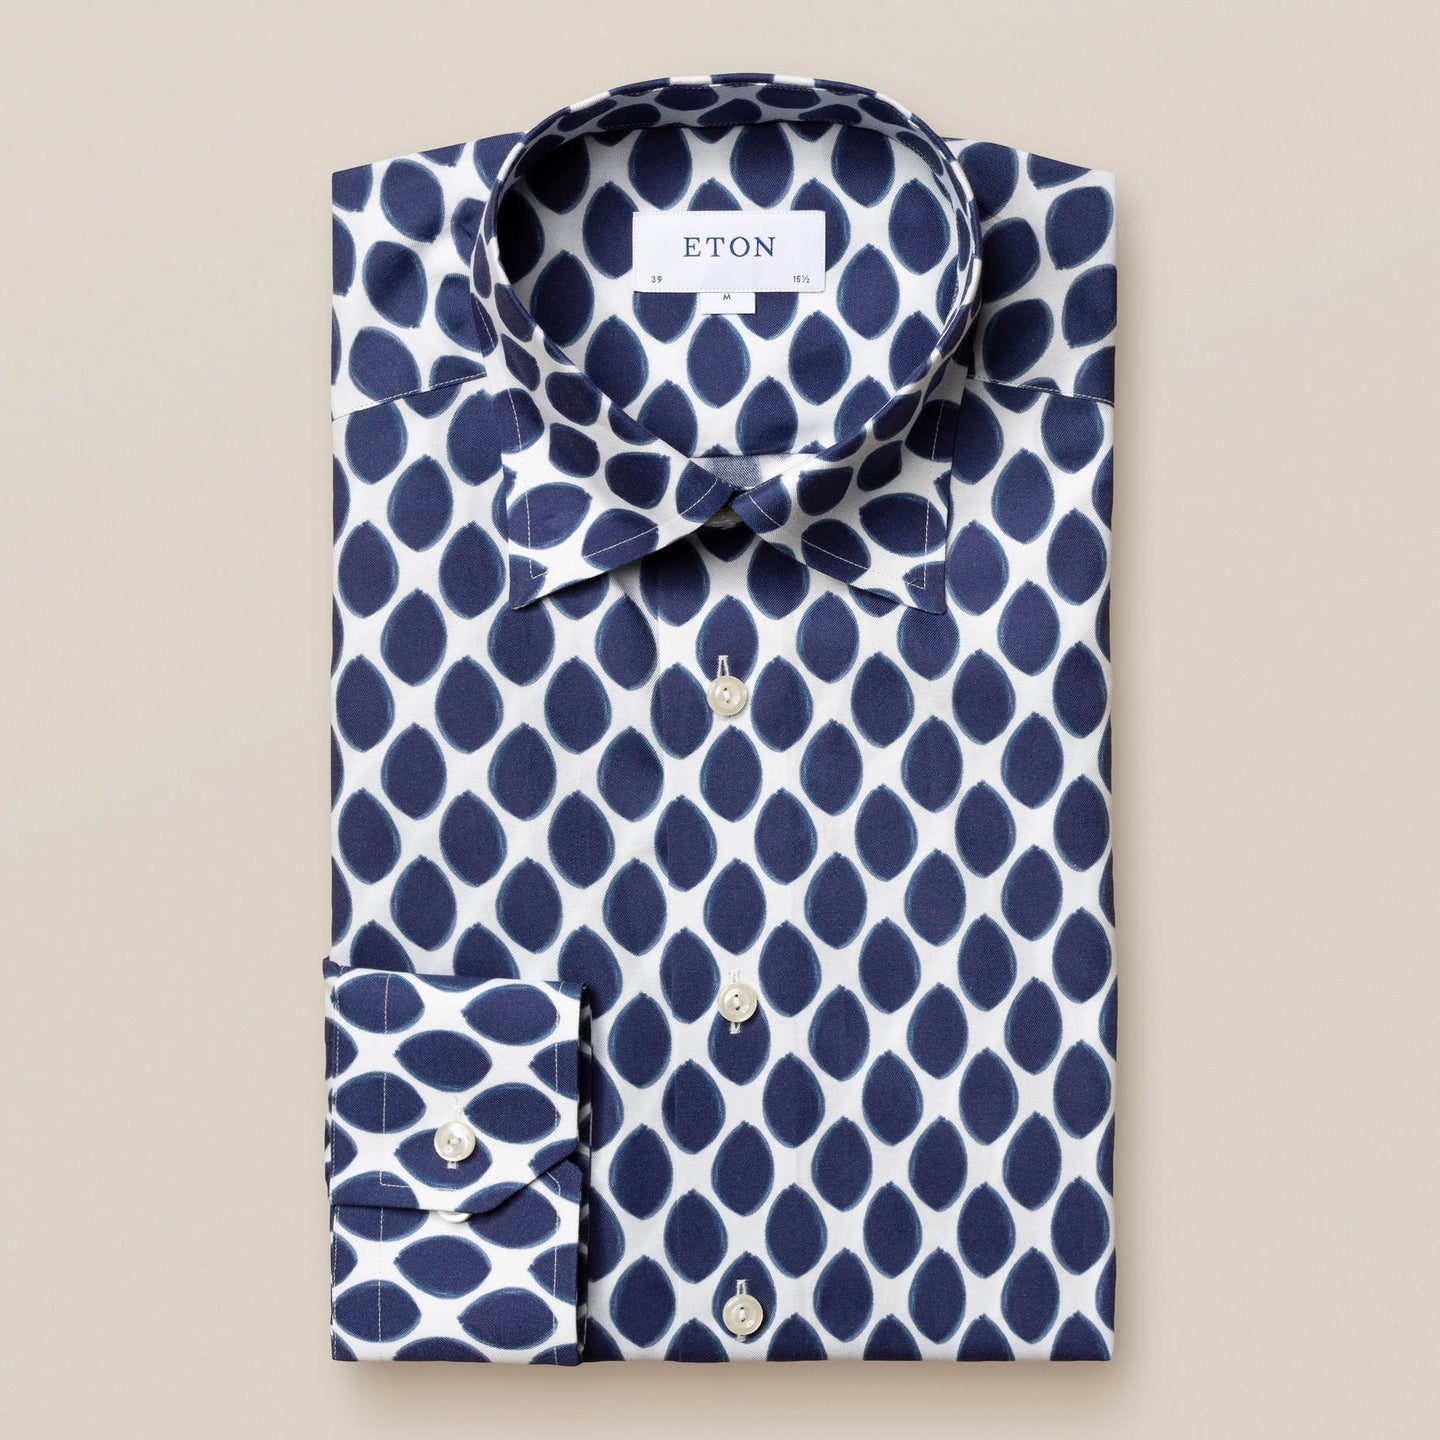 100001119 Eton Watercolour Navy Dots Men's Shirt stocked online ireland